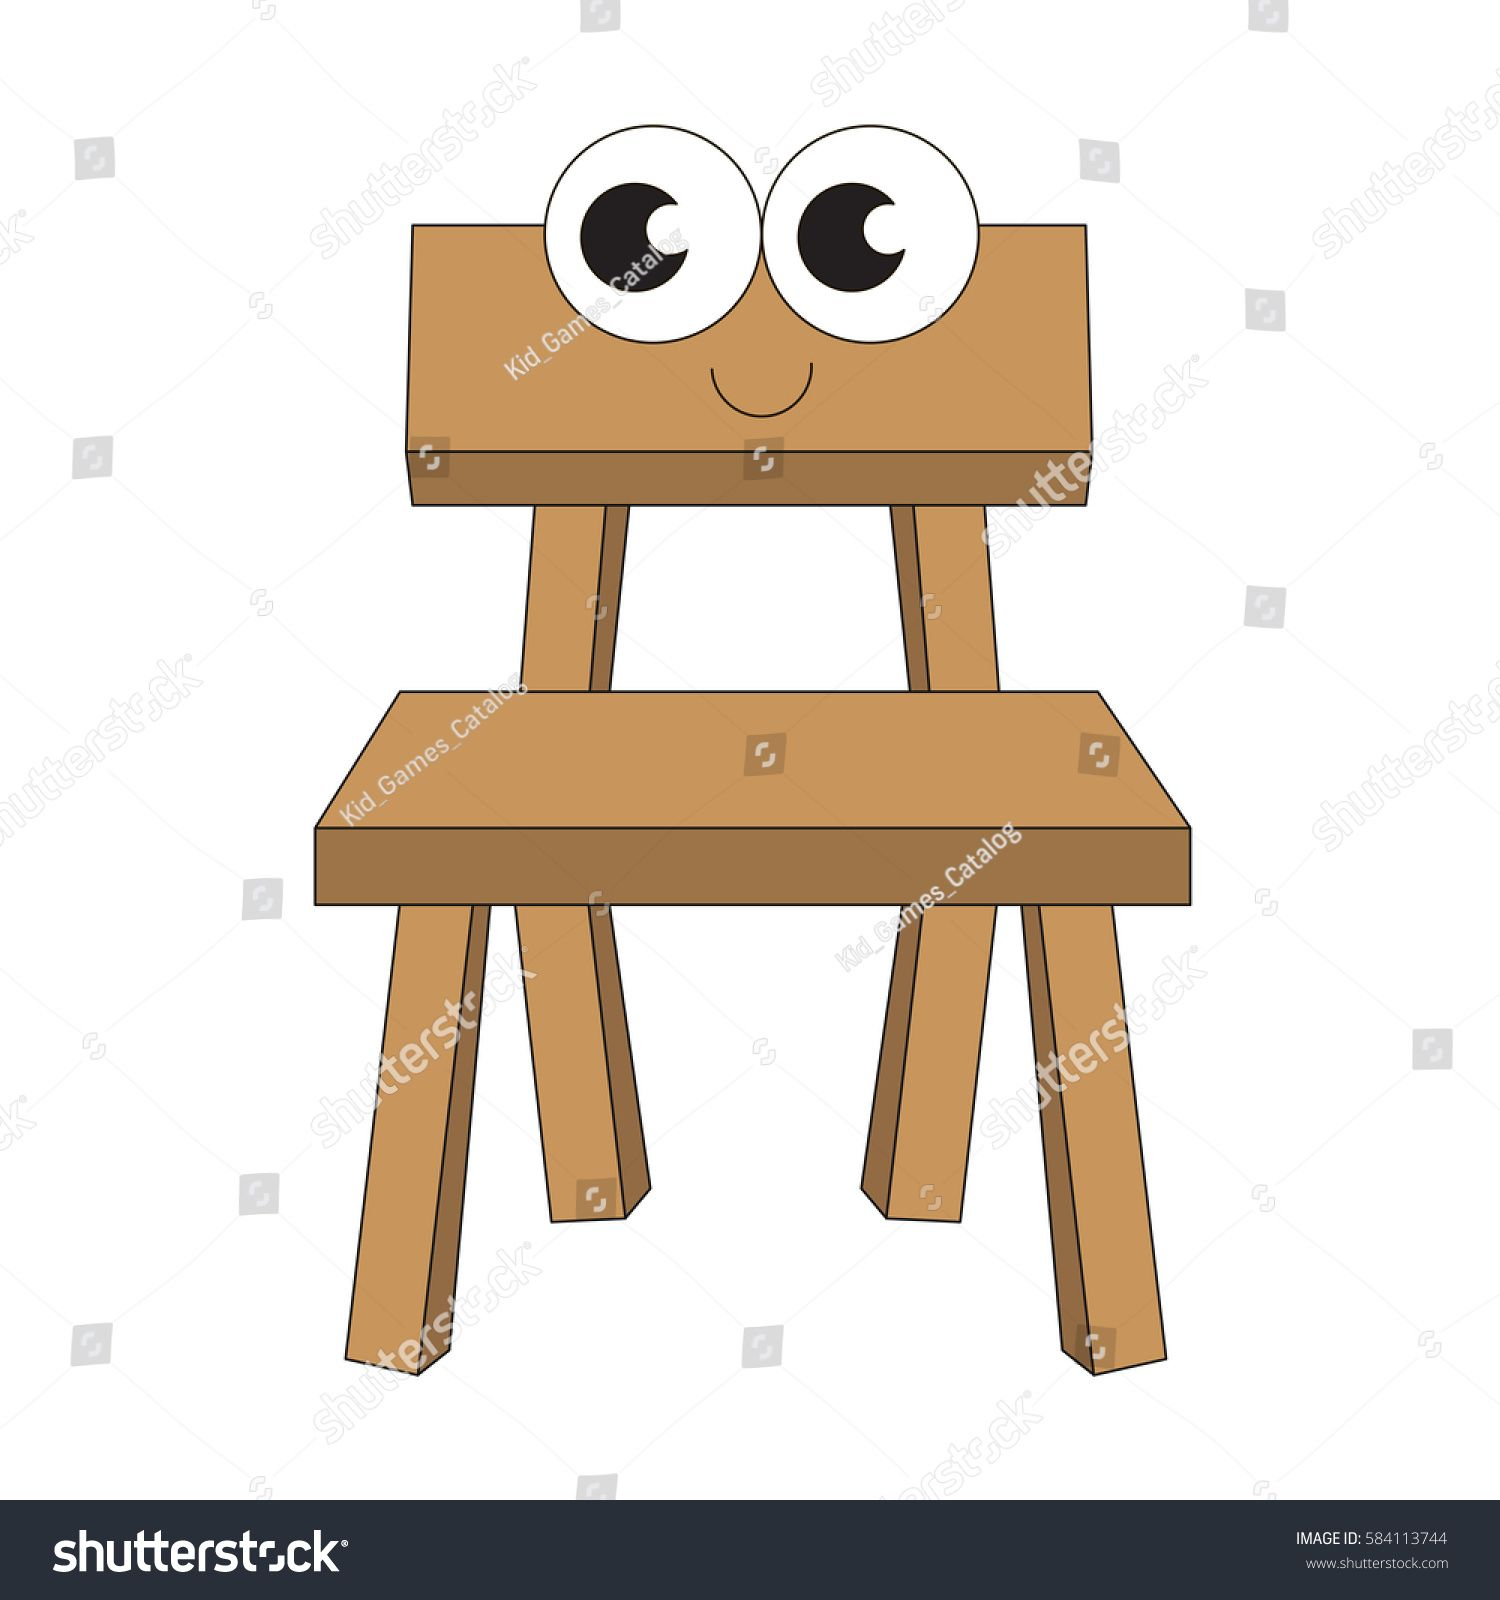 Wooden Chair Cartoon Outlined Object With Black Stroke Sponsored Ad Cartoon Chair Wooden Outlined In 2020 Wooden Chair Cartoon Wooden